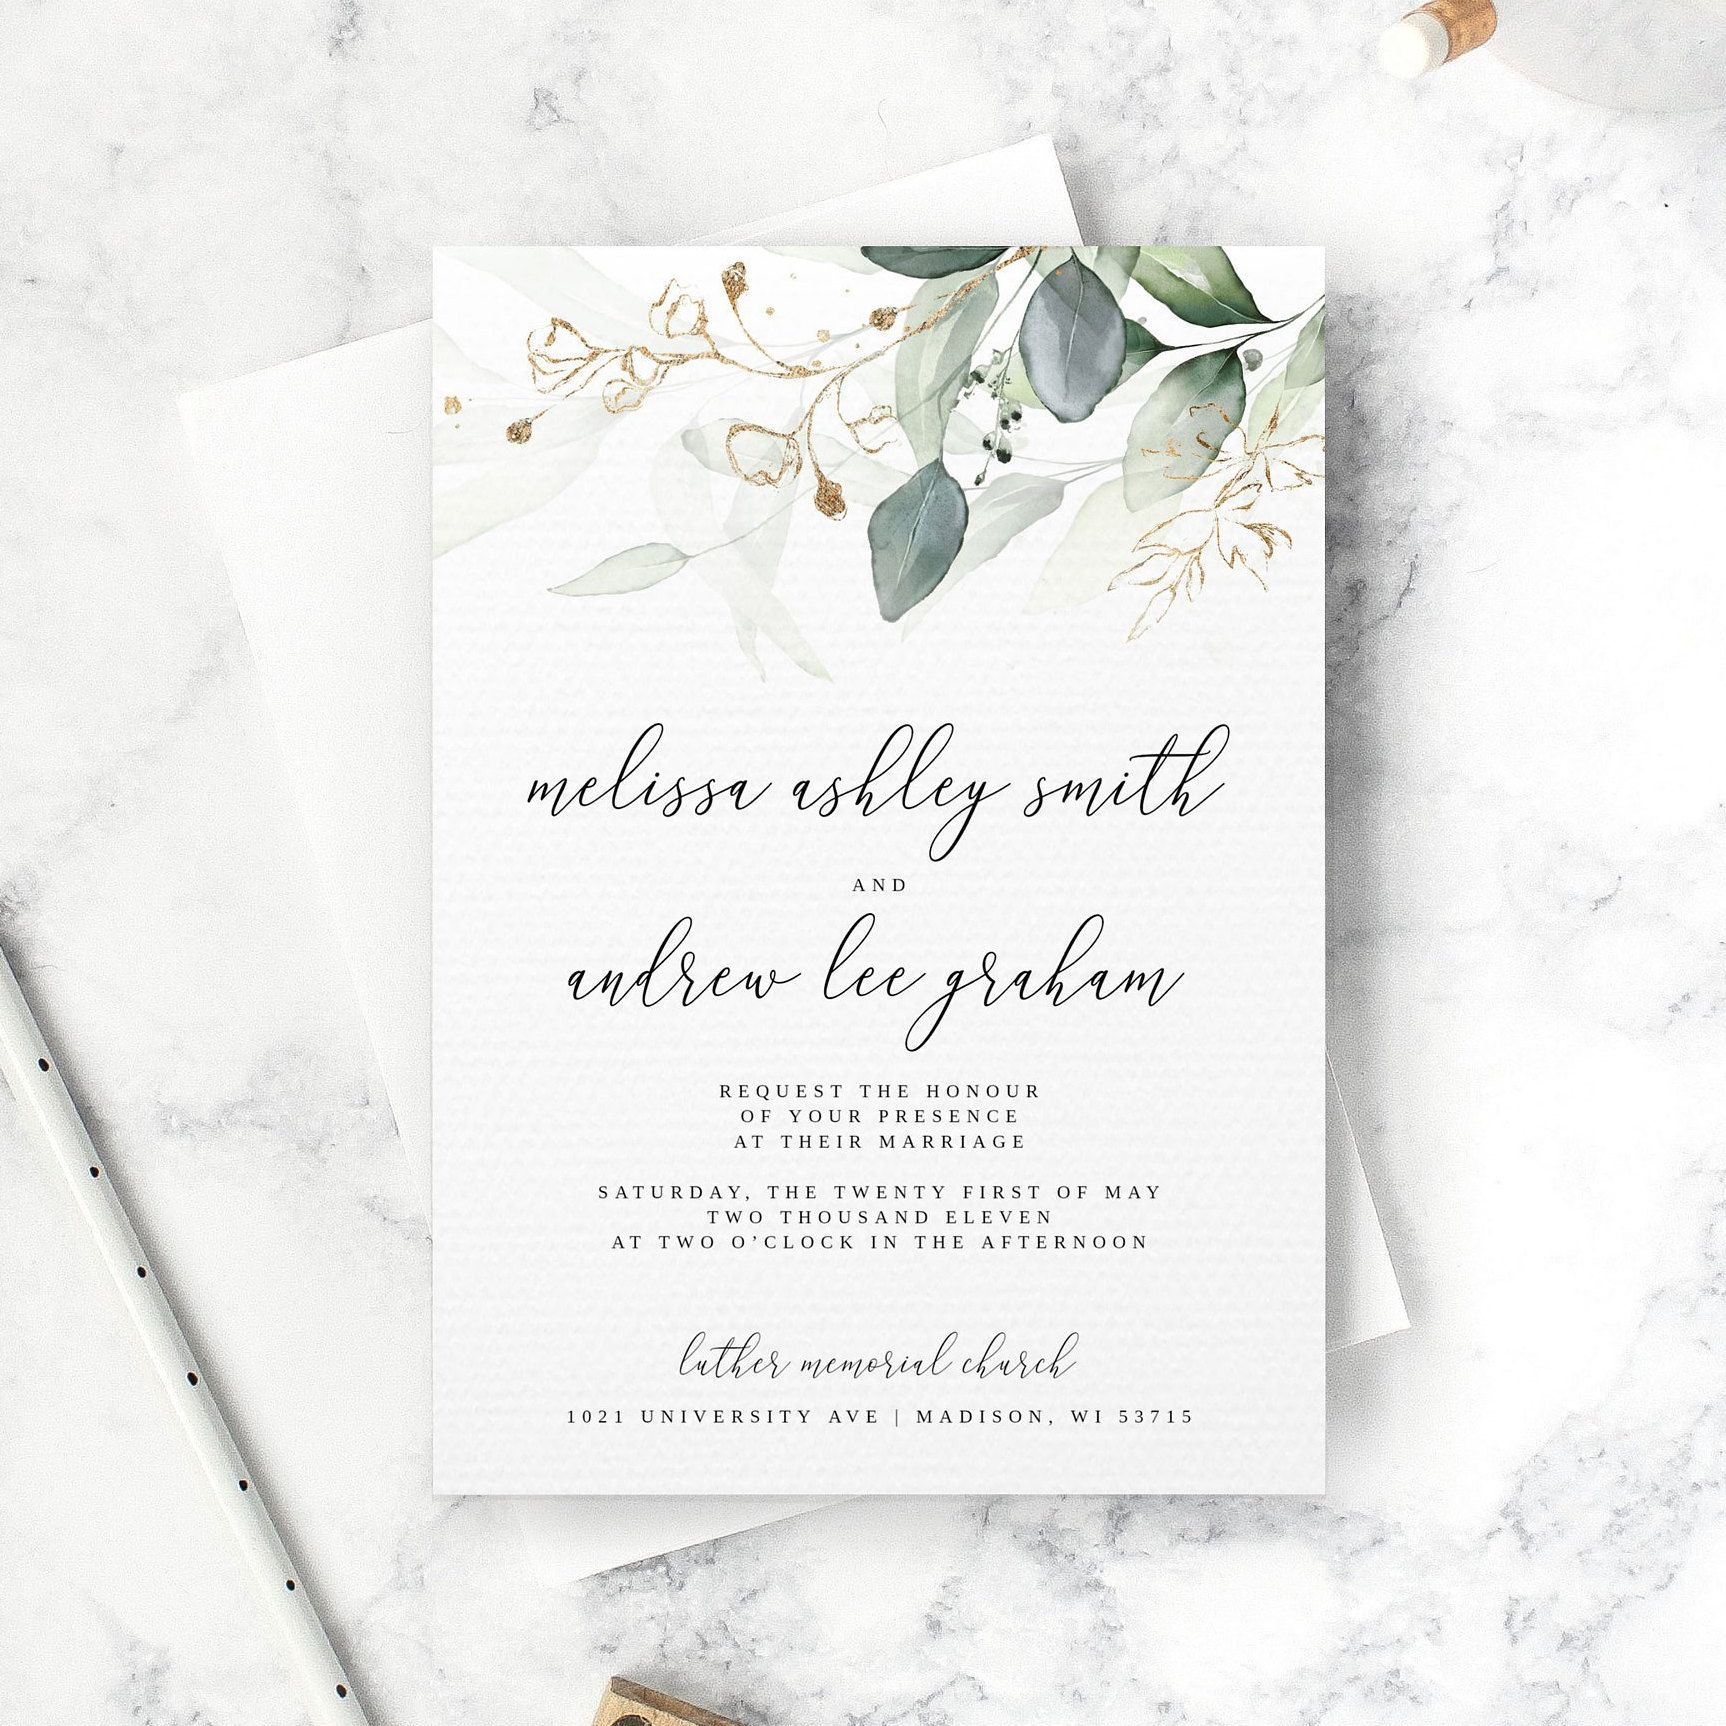 Eucalyptus Wedding Invitation Set Template Invitation Only Etsy Wedding Invitation Templates Eucalyptus Wedding Invitation Wedding Invitation Sets